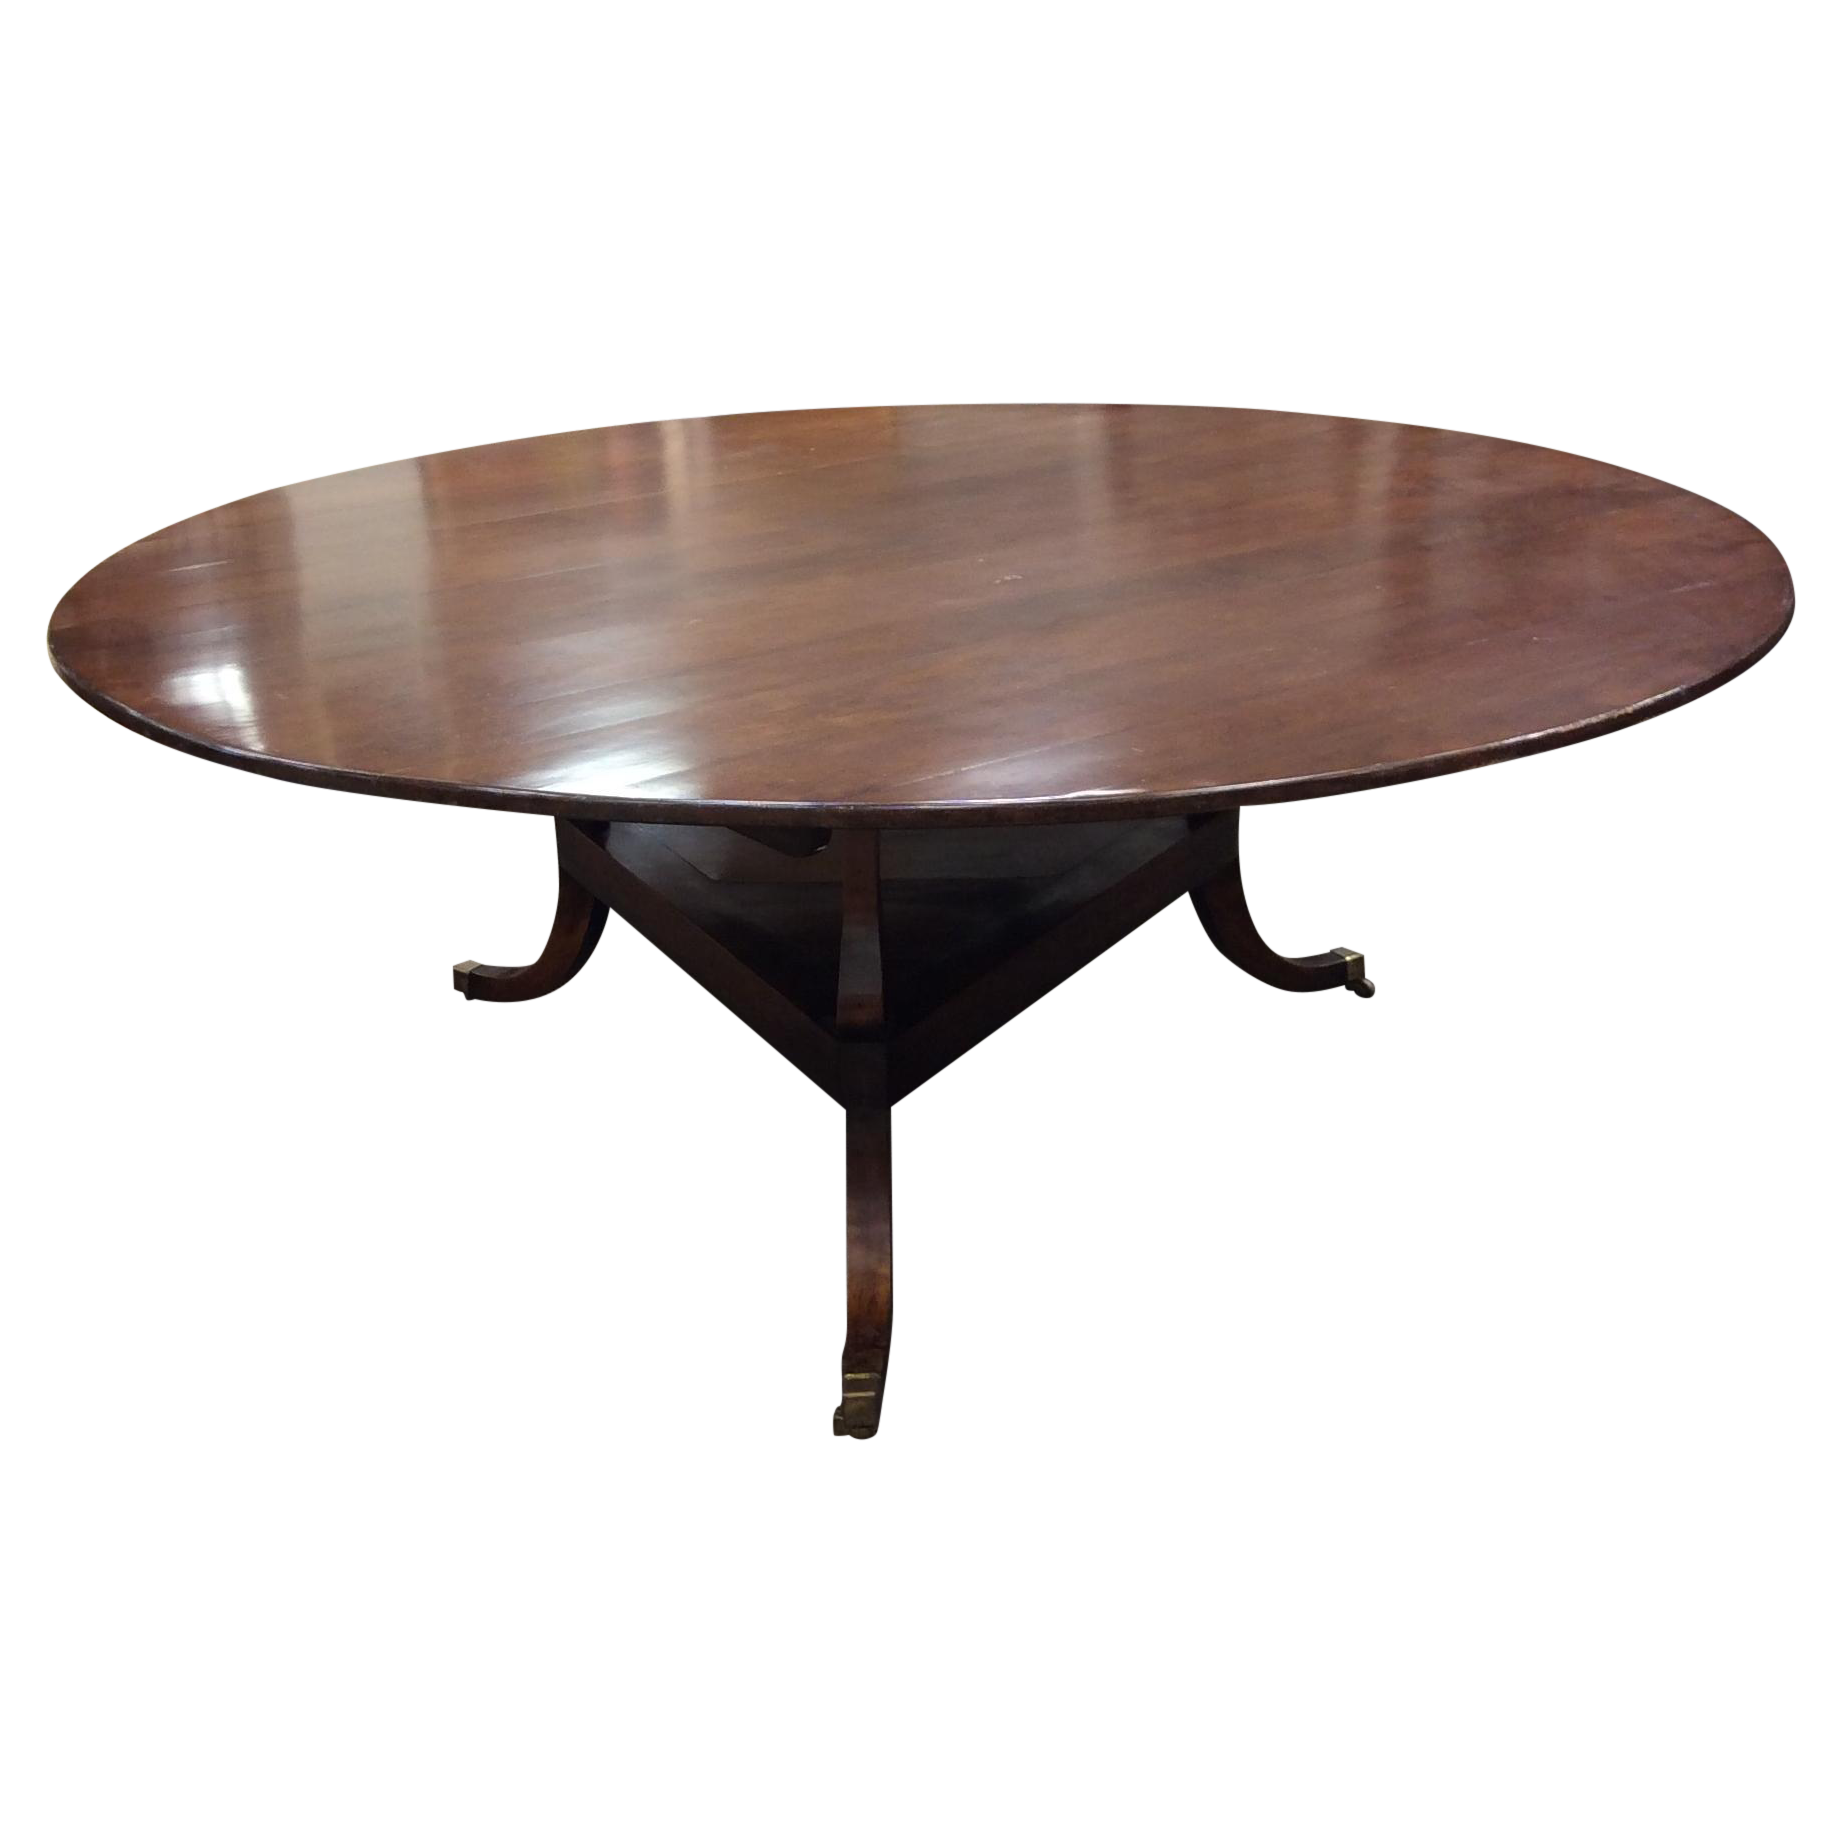 Pedestal drawing round table. Dining triangular with